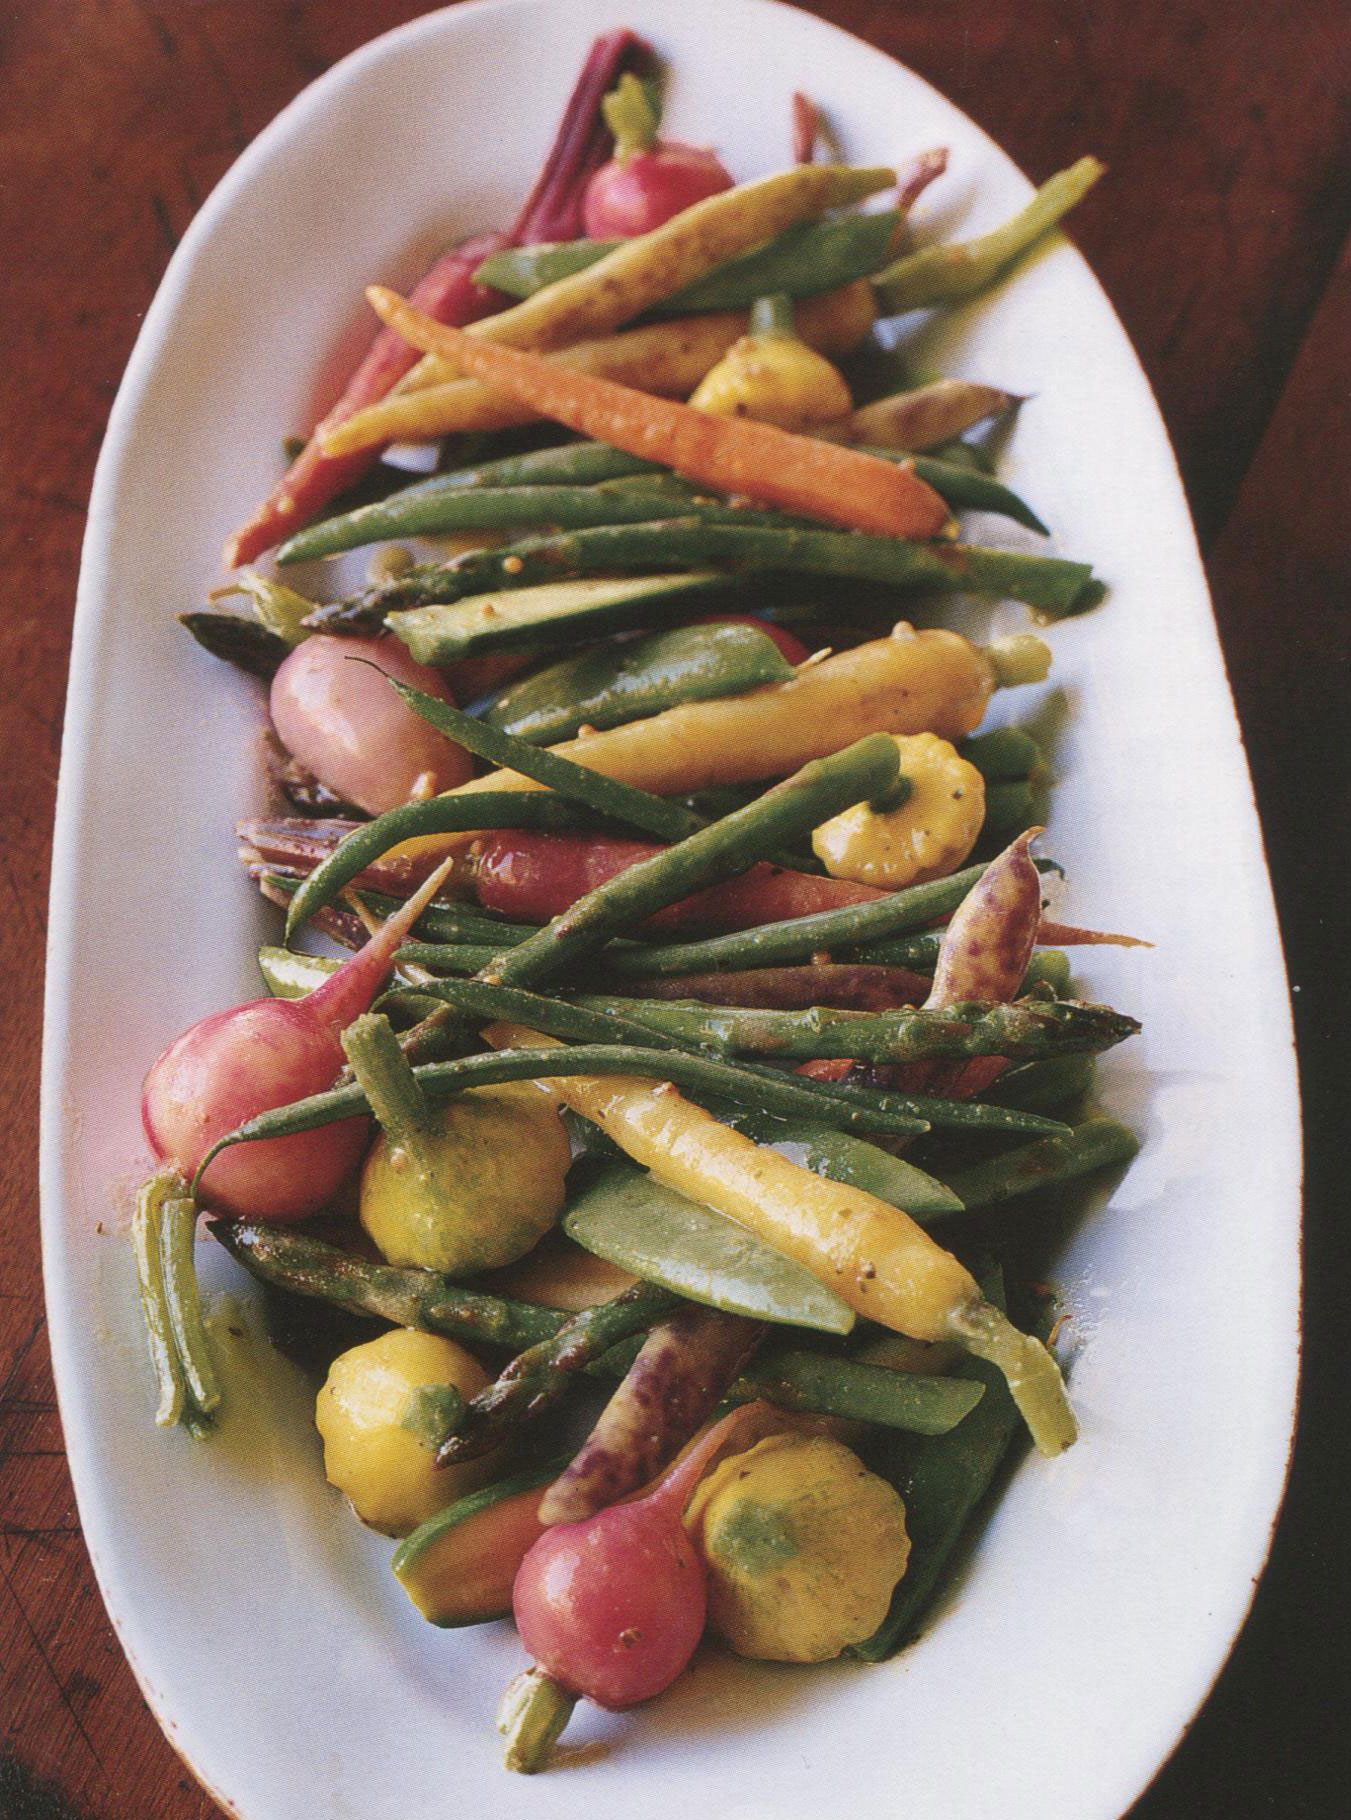 TBT Recipe: Pickled Spring Vegetables